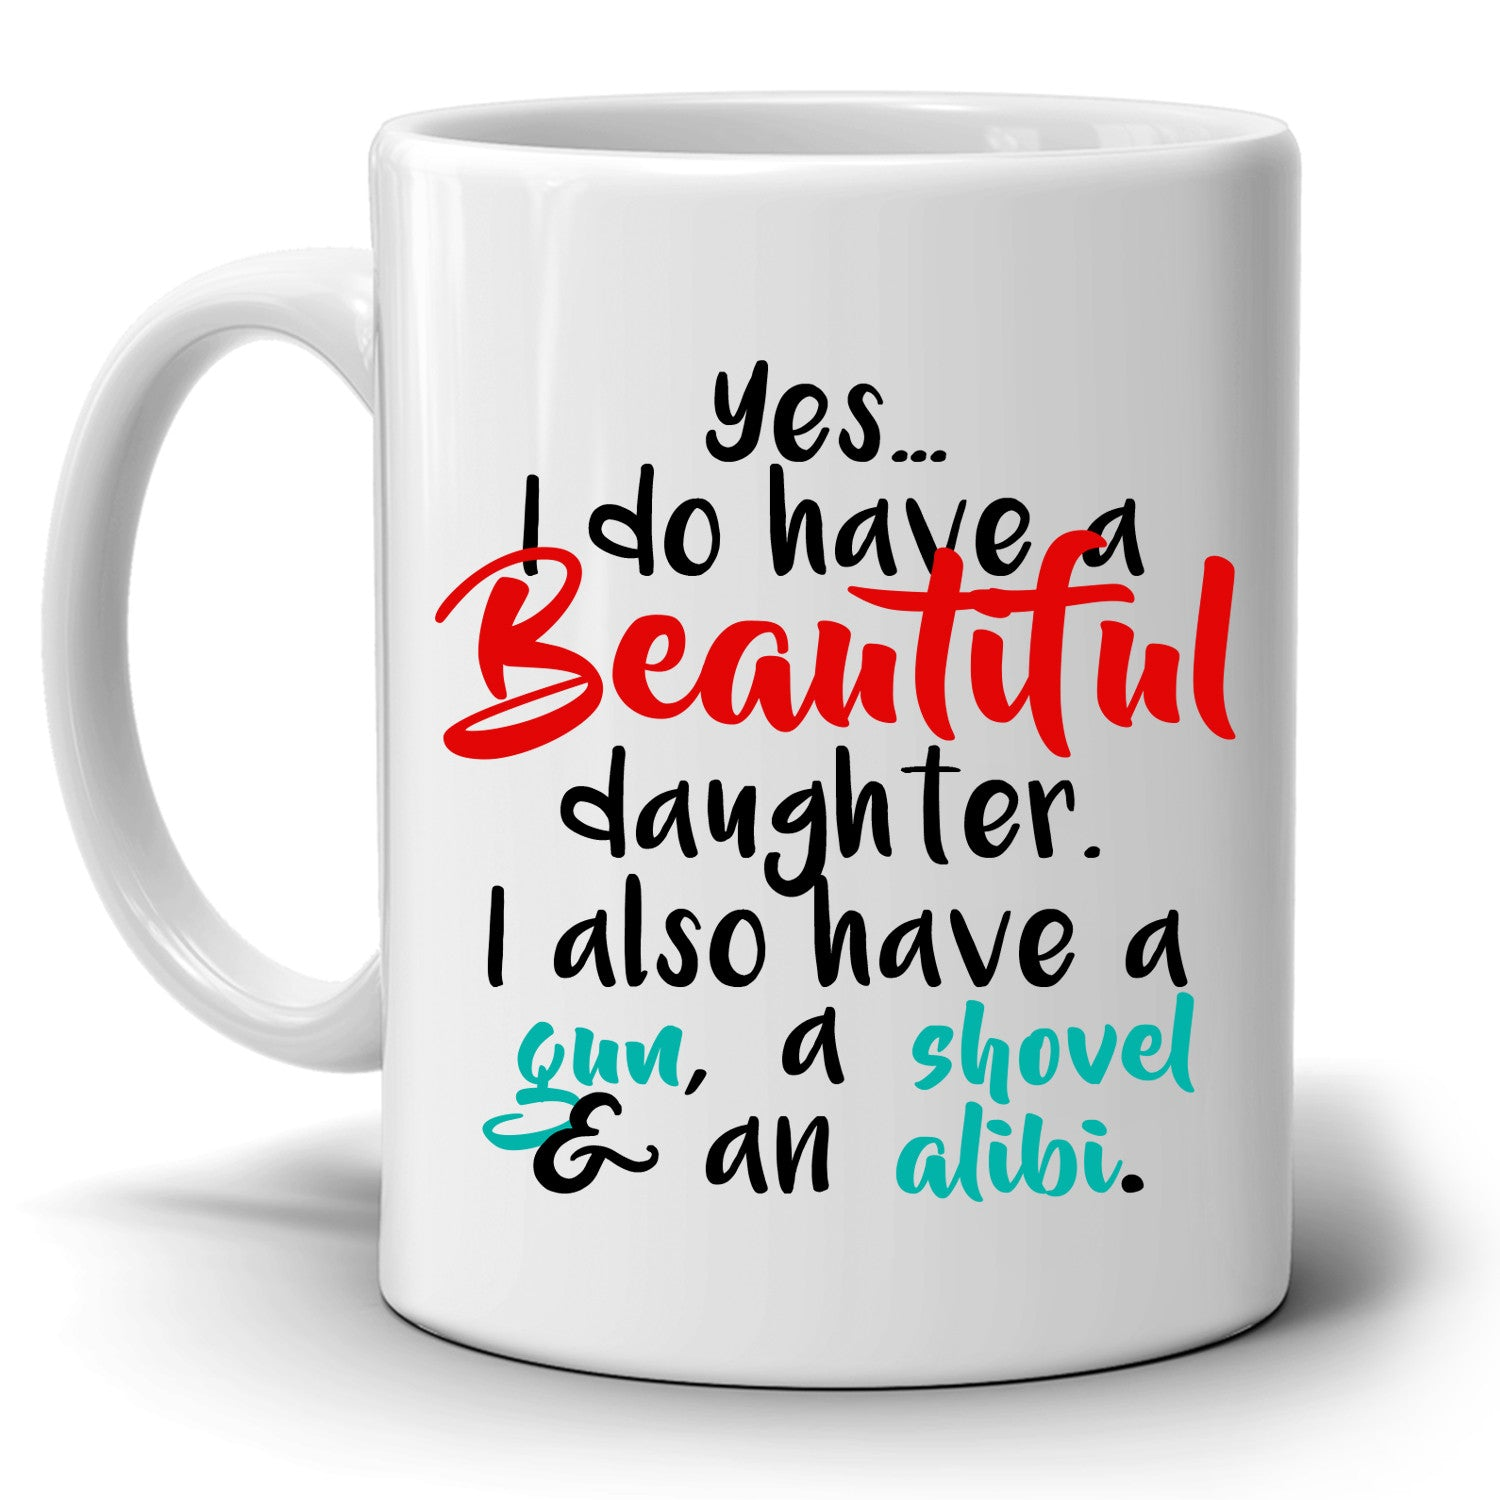 Dads Birthday Gift For Daughter Perfect Fathers Day Gifts Coffee Mug Printed On Both Sides